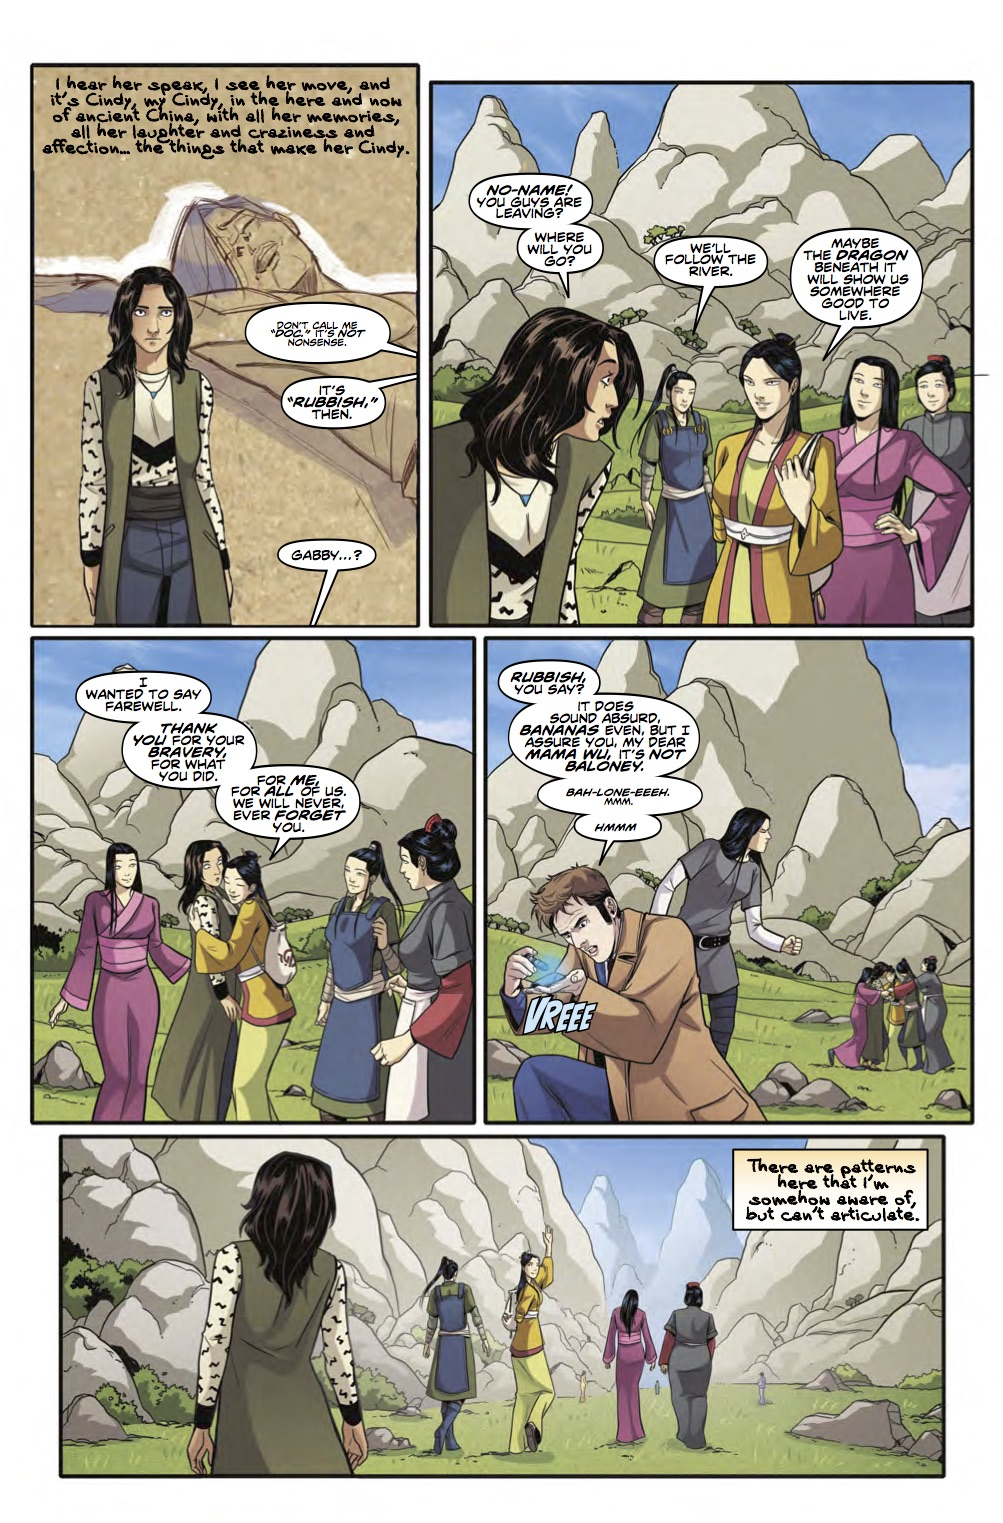 D​octor Who: The Tenth Doctor Year 3 #6​ Page 5 (Credit: Titan)